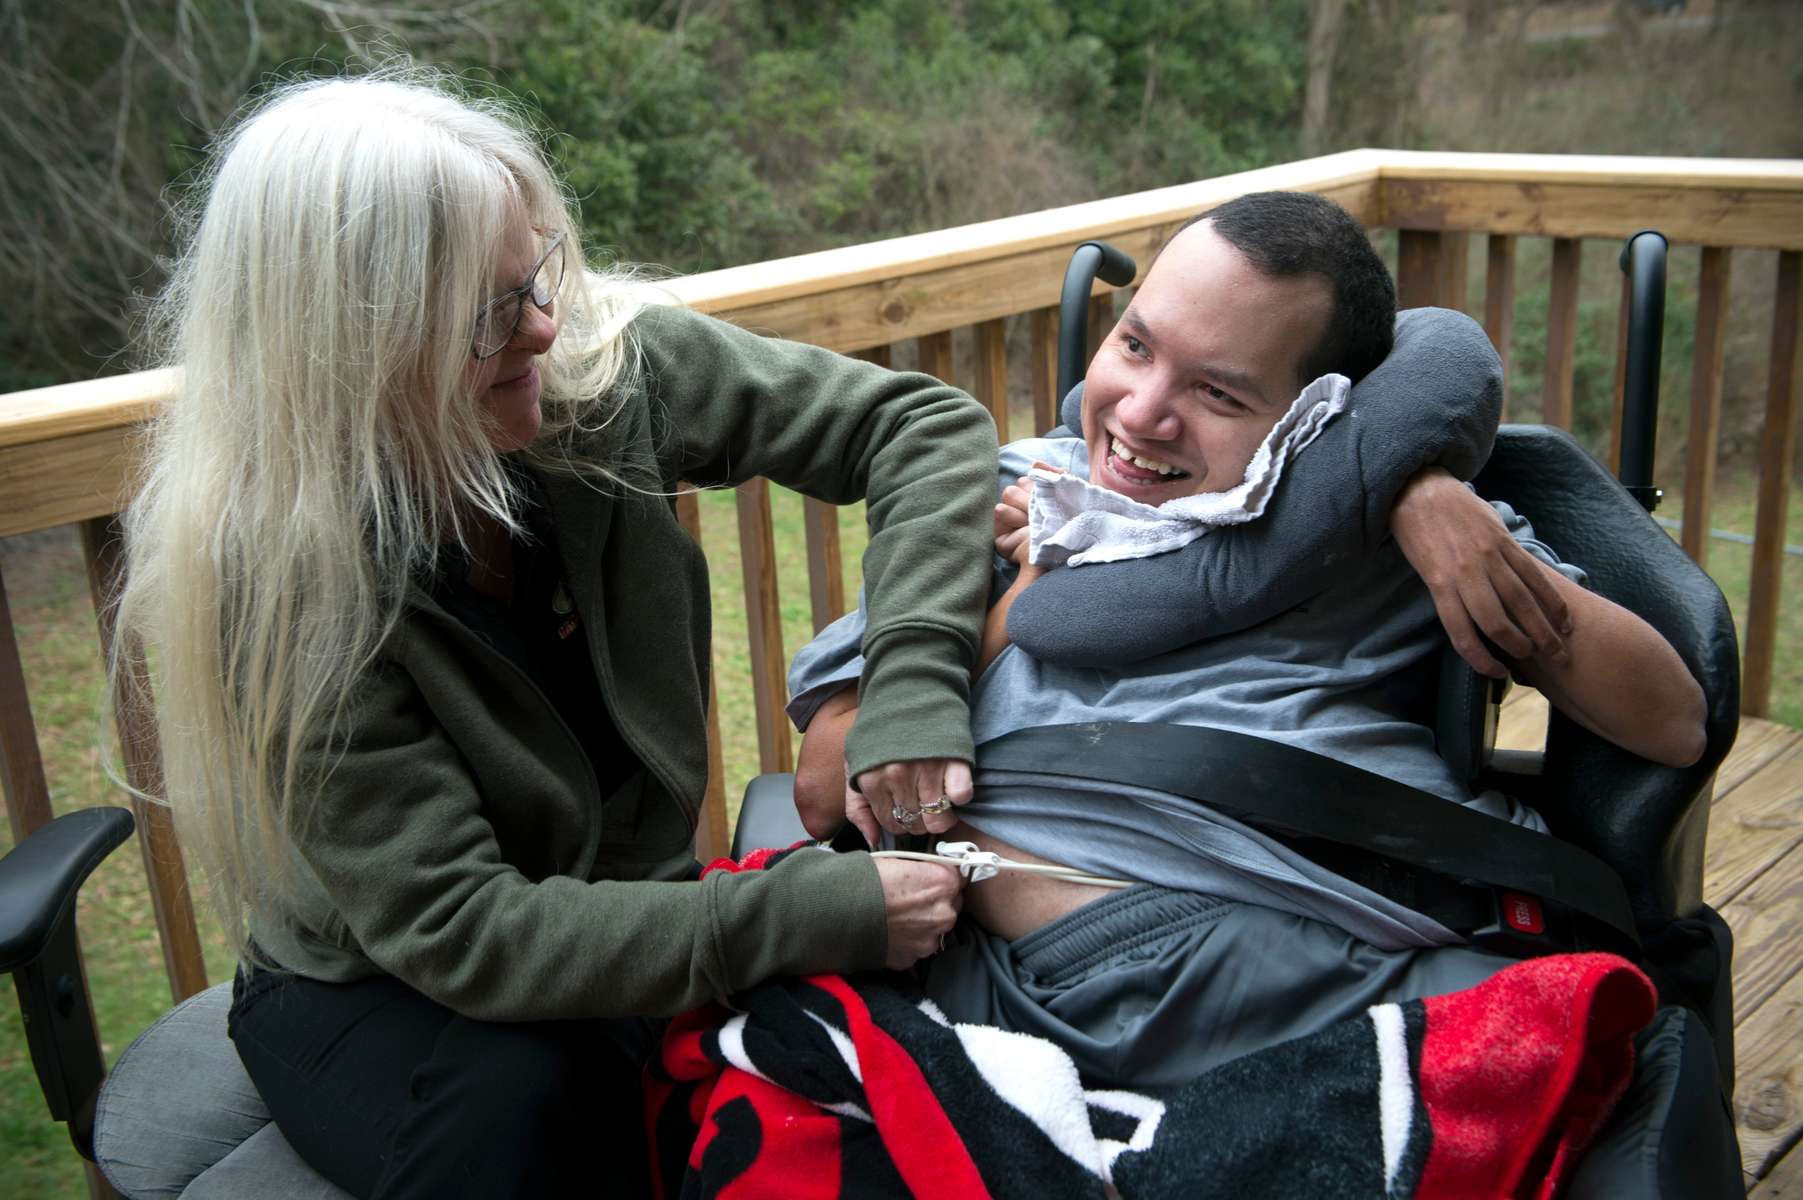 "LISA ARCHIBALD has been caring for her profoundly disabled brother John David in her home for more than 20 years. John David, 36, is non-verbal, quadriplegic, and medically fragile because of cerebral palsy, polymicrogyria, and dysplasia. He lives in Archibald's home and requires 24-hour care. He has seizures, restrictive lung disease and silent aspiration into his lungs, which requires constant supervision to prevent choking.Archibald has been able to care for her brother in her home with the help of a patchwork of support staff, funded by a Medicaid waiver for daily in-home care. ""He really requires 24-7, two-to-one care, but we've been making do with the staffing hours we've had for many years,"" explained Archibald, 53, who provides much of his hands-on care herself. She assumed responsibility for his care since their mother died 23 years ago. She removed walls in her living room to accommodate his bed and medical equipment. His care is center-stage in her life.But that care is now uncertain, and Archibald faces a grim decision.If proposed caps for support for Georgia's medically-fragile residents become reality in two months, ""Families will have to make one of the most gut-wrenching decisions of our lives:  to choose between quitting our jobs, losing the ability to support ourselves and other family members in order to care for our person, or placing our medically-fragile family member in a group or nursing home,"" she said.""My brother was in a group home for several years, and nearly died. To place him back into another group home would be a death sentence. He would not survive. John David loves being at home and being a part of our community,"" she said. ""He knows he's loved.""Pictured: Lisa Archibald adjusts tube that constantly feeds into to her brother's stomach."